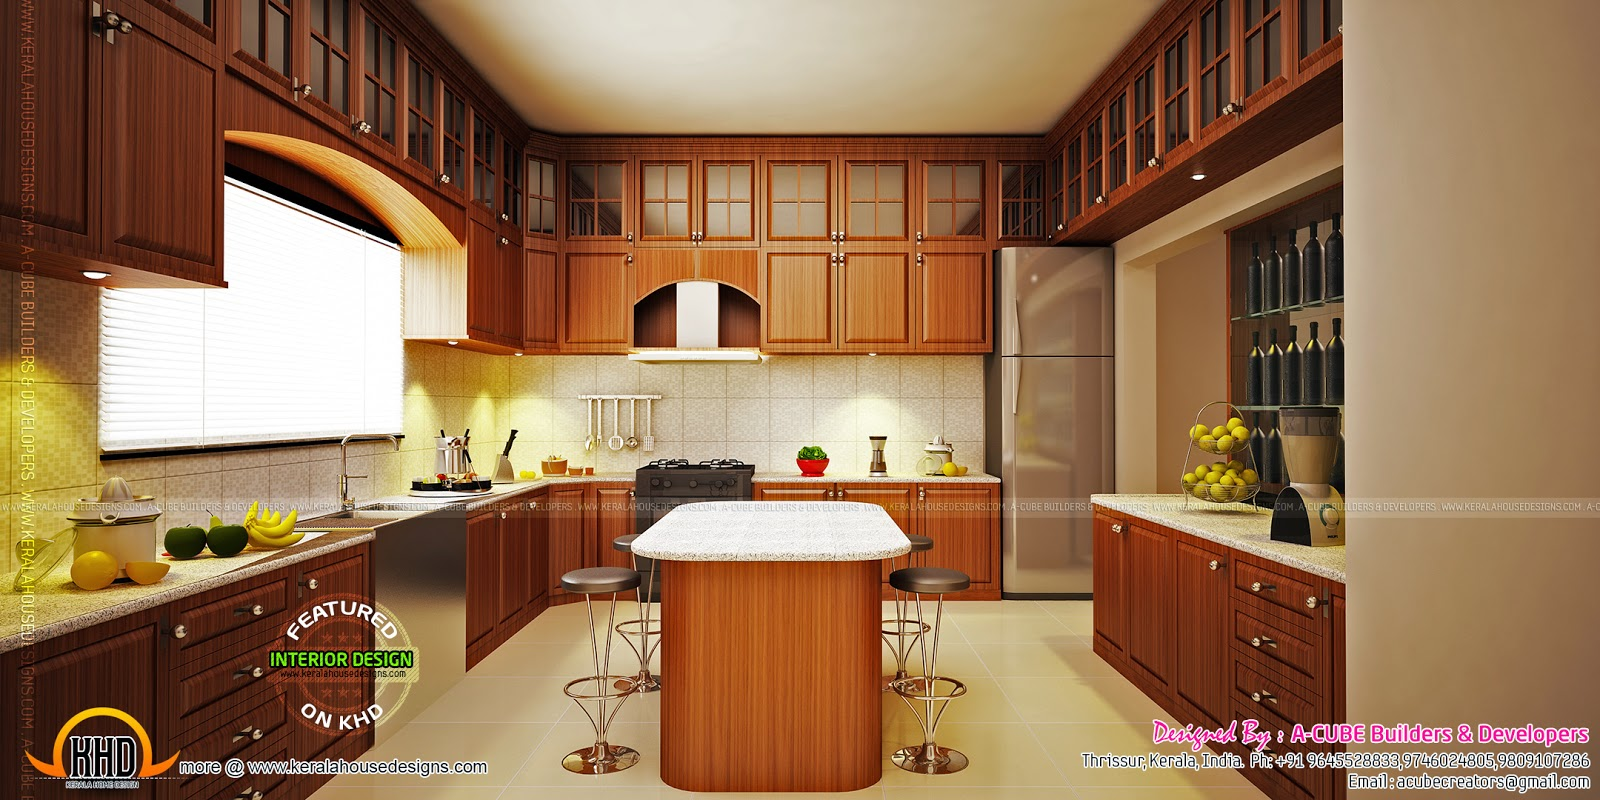 Kitchen Interior Design: Modern Kerala Interior Designs